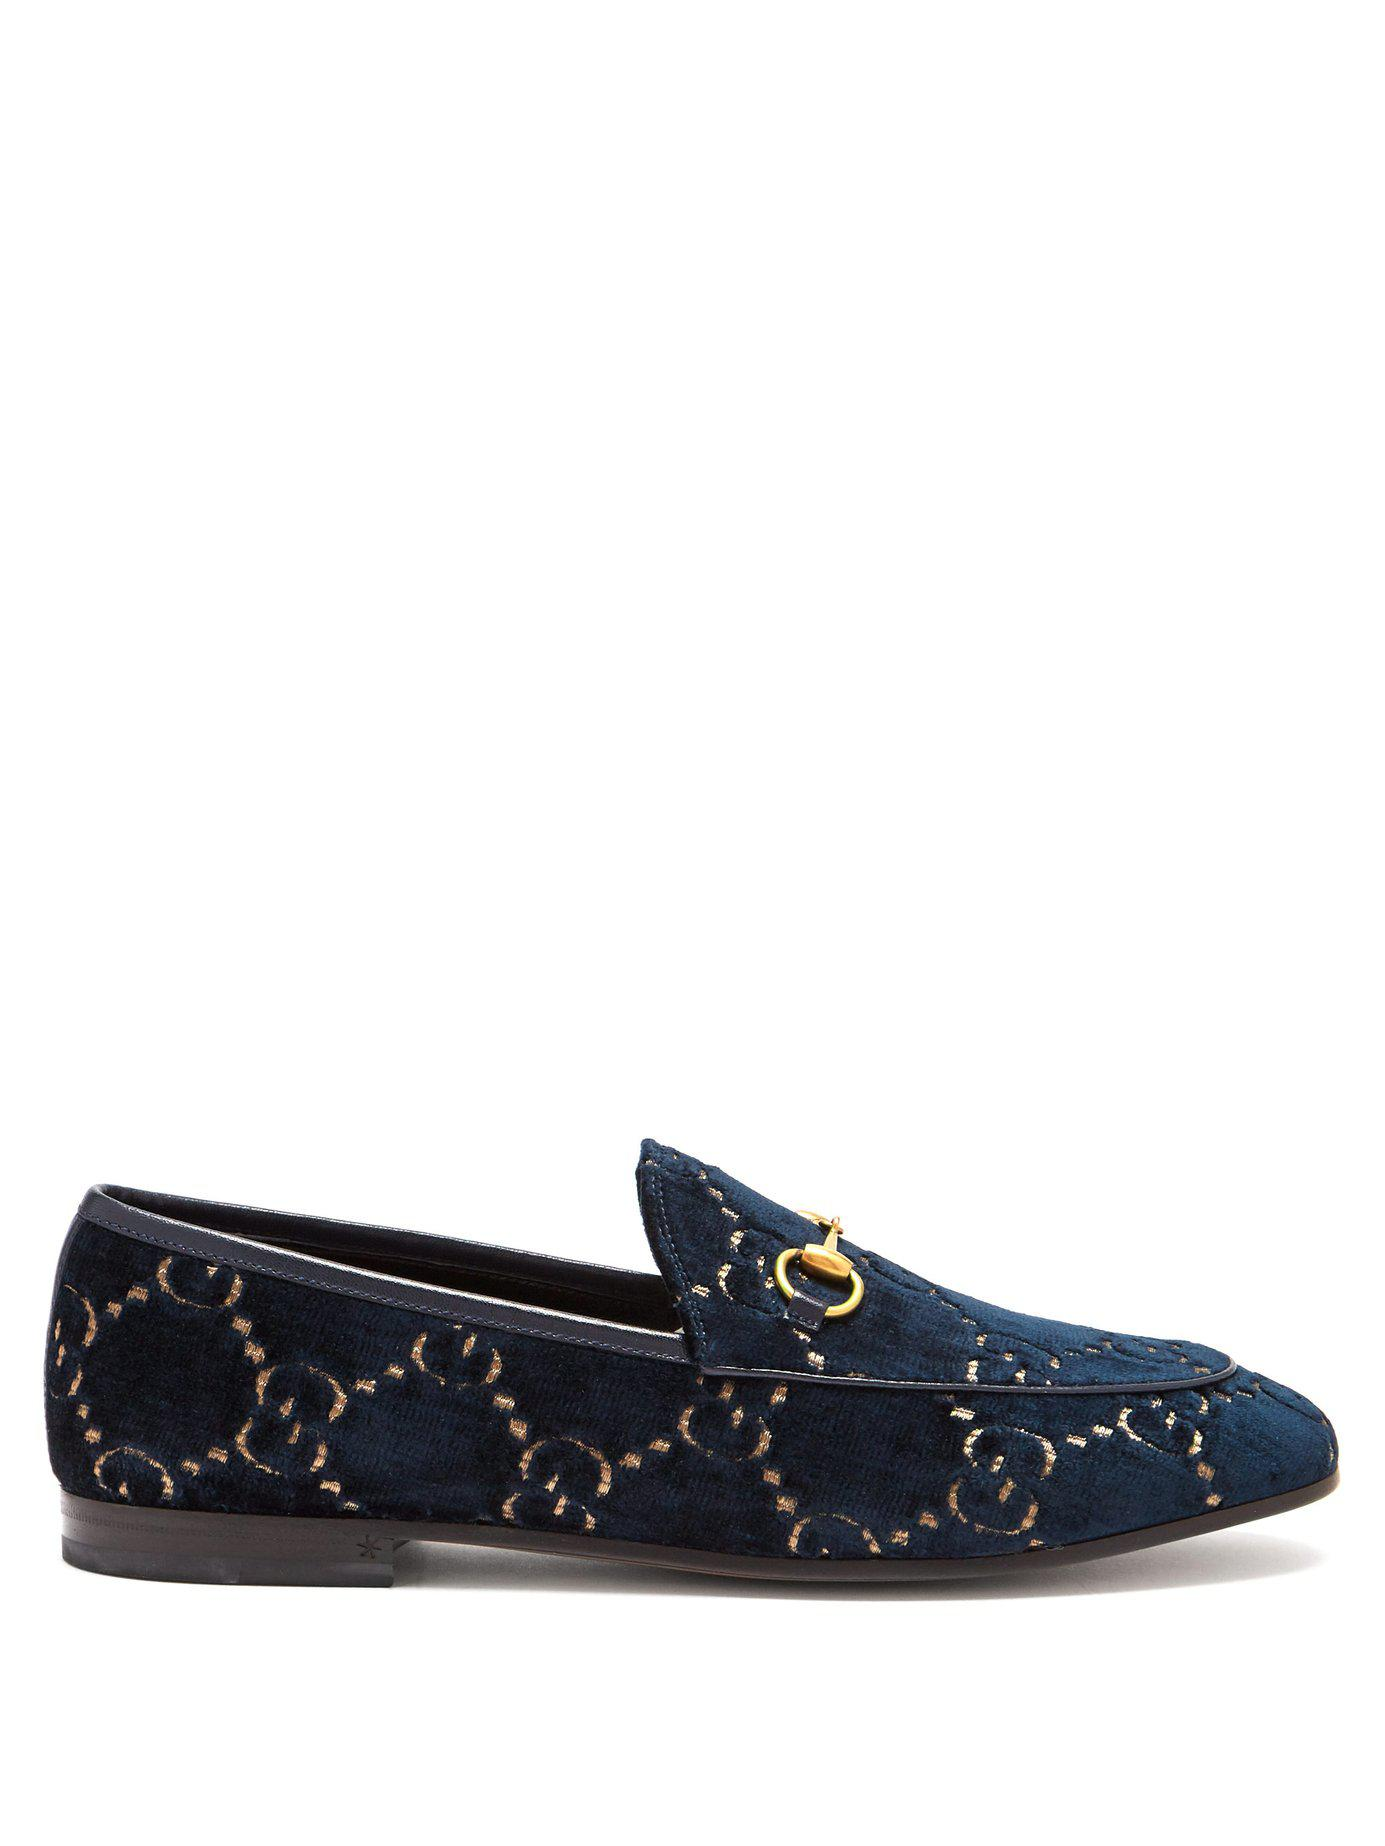 62dd8fcda64 Lyst - Gucci Jordaan GG Velvet Loafer in Blue